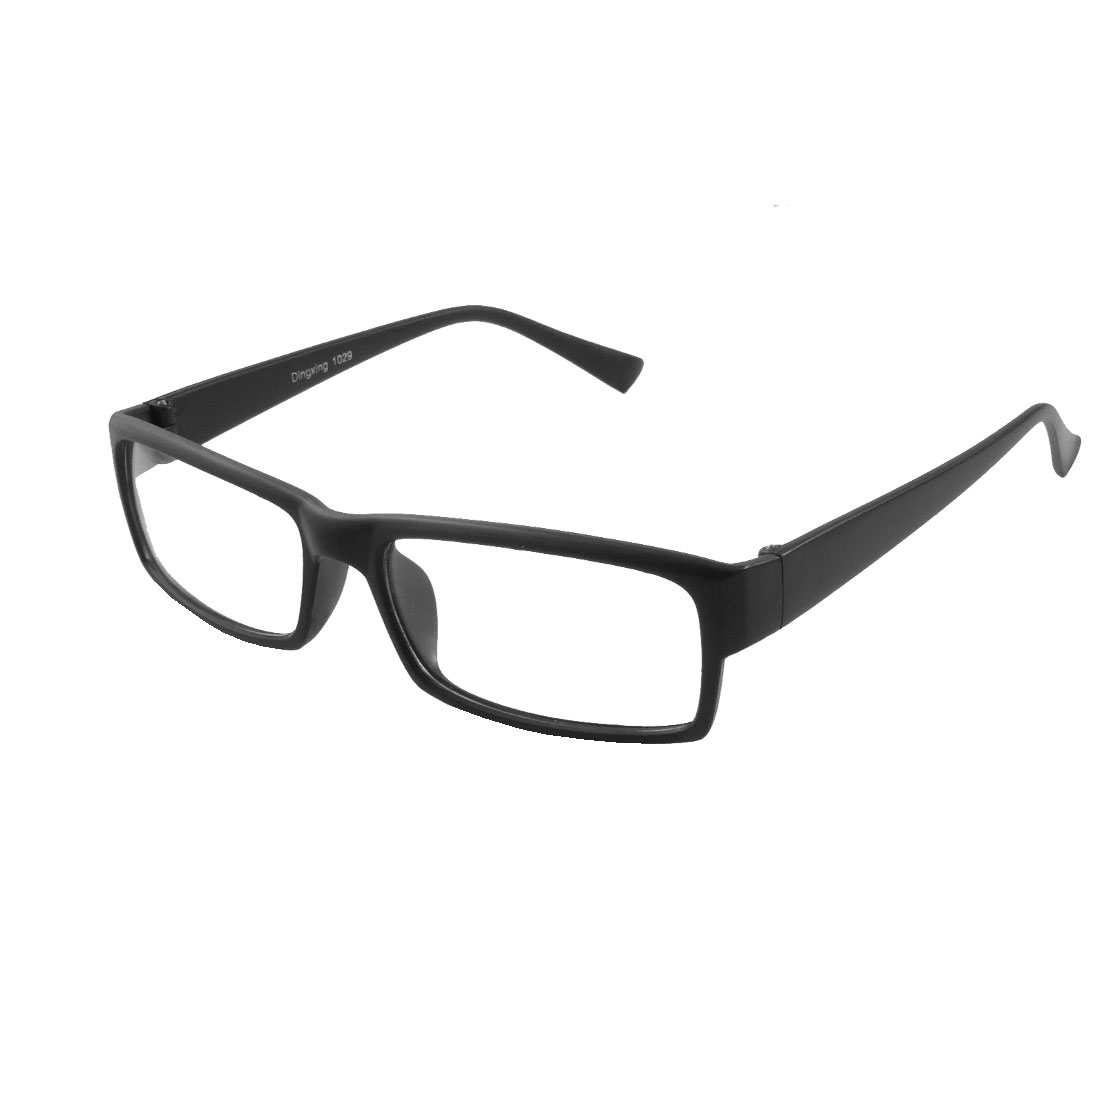 Unisex Plastic Frame Arms Clear Rectangle Lens Plain Glasses Black